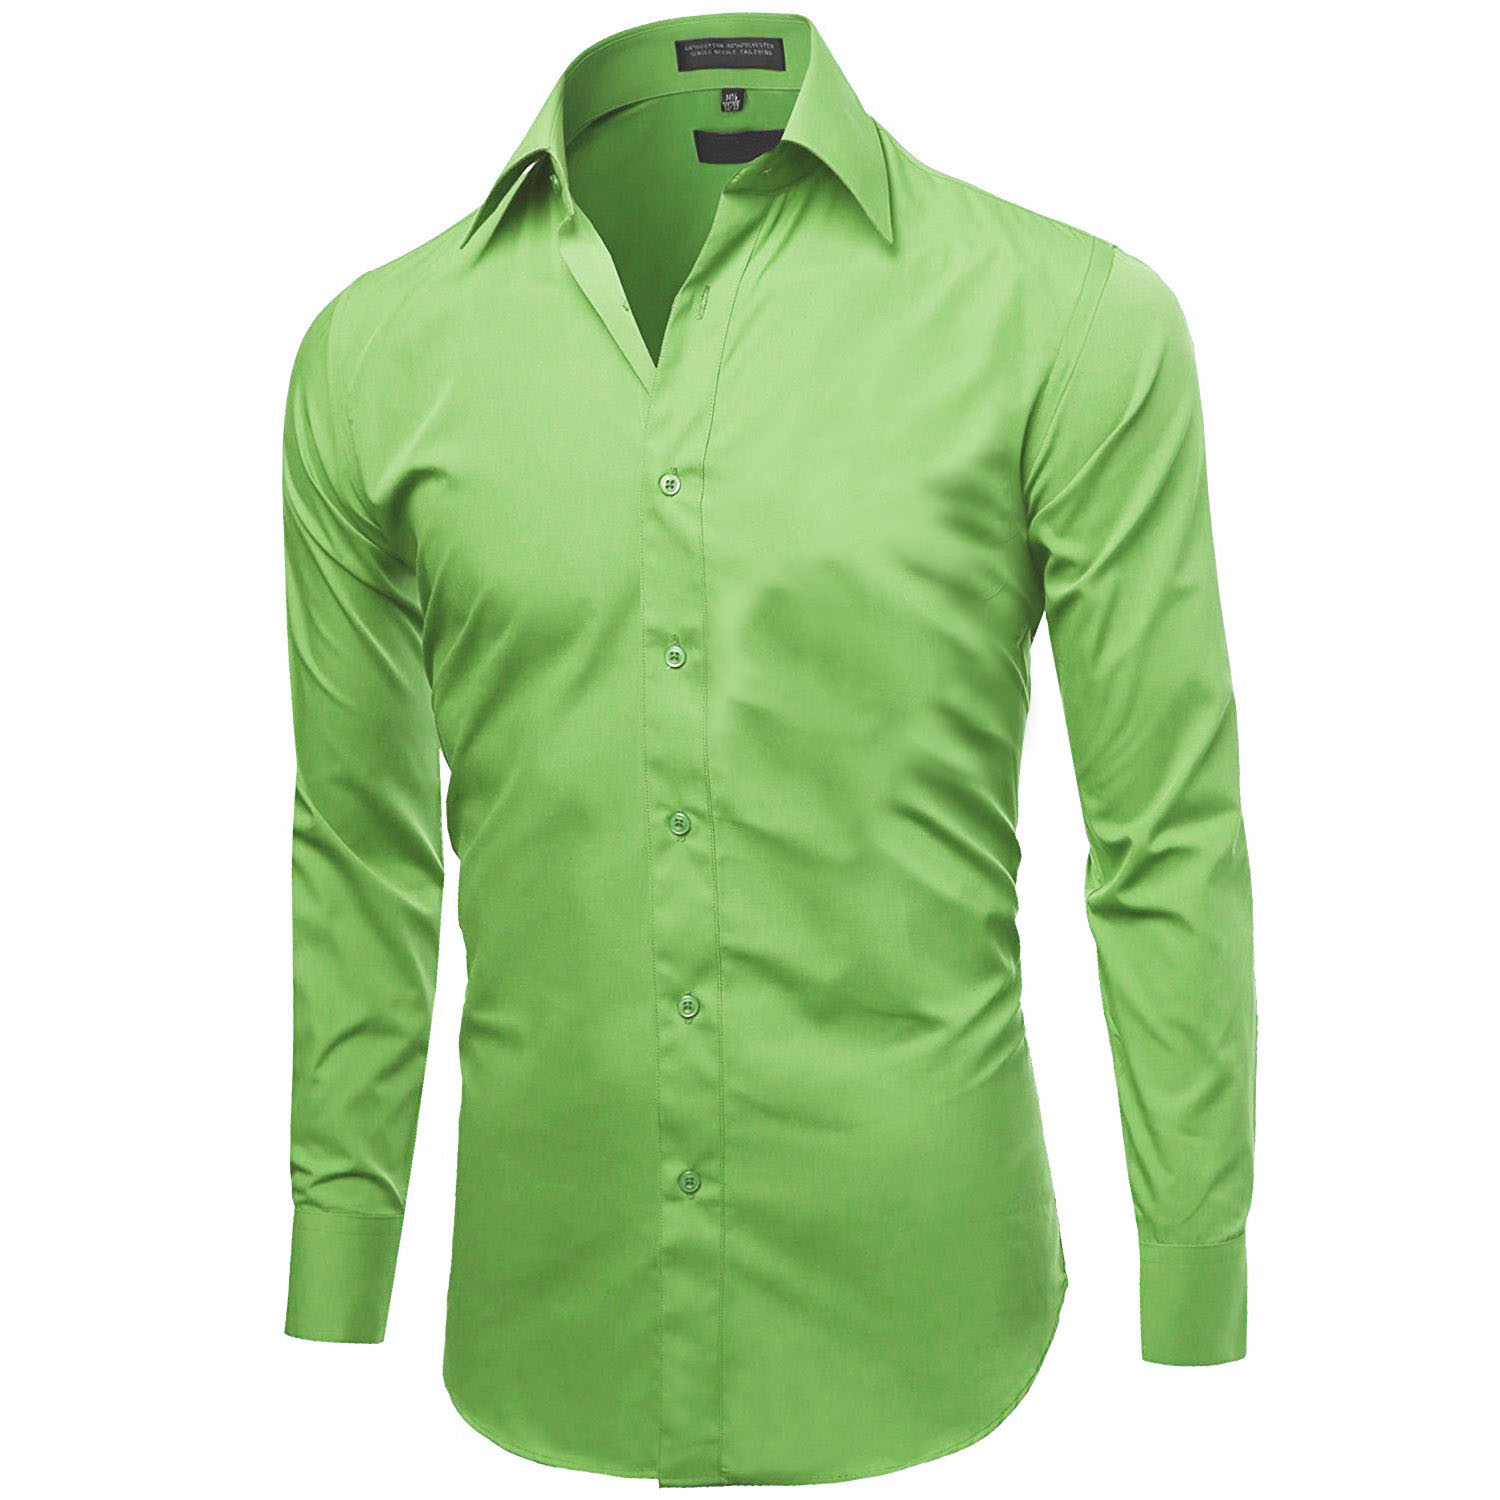 Omega-Italy-Men-039-s-Premium-Slim-Fit-Button-Up-Long-Sleeve-Solid-Color-Dress-Shirt thumbnail 3